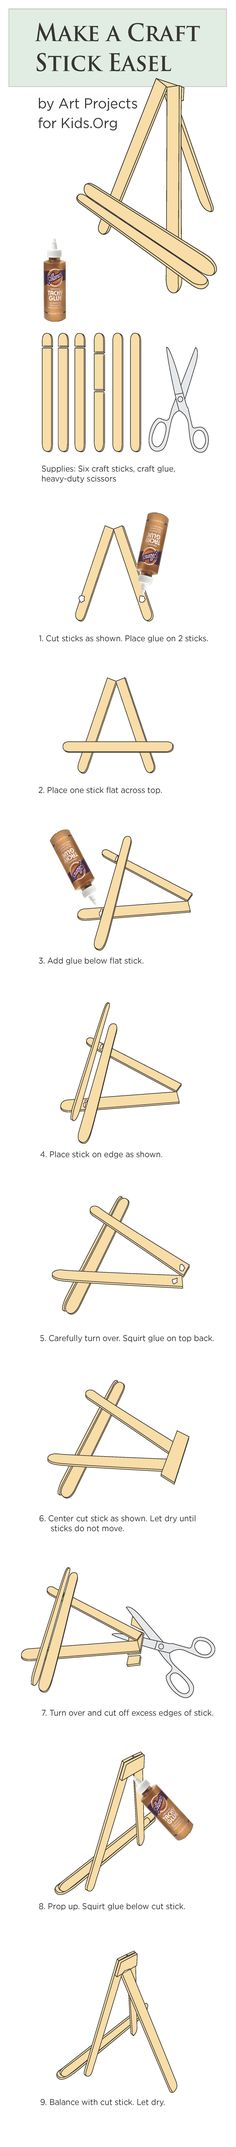 Popsicle Stick Easel Tutorial · Art Projects for Kids Craft Stick Easel Tutorial Popsicle Crafts, Craft Stick Crafts, Fun Crafts, Diy And Crafts, Crafts For Kids, Craft Sticks, Plate Crafts, Paint Sticks, Craft Art